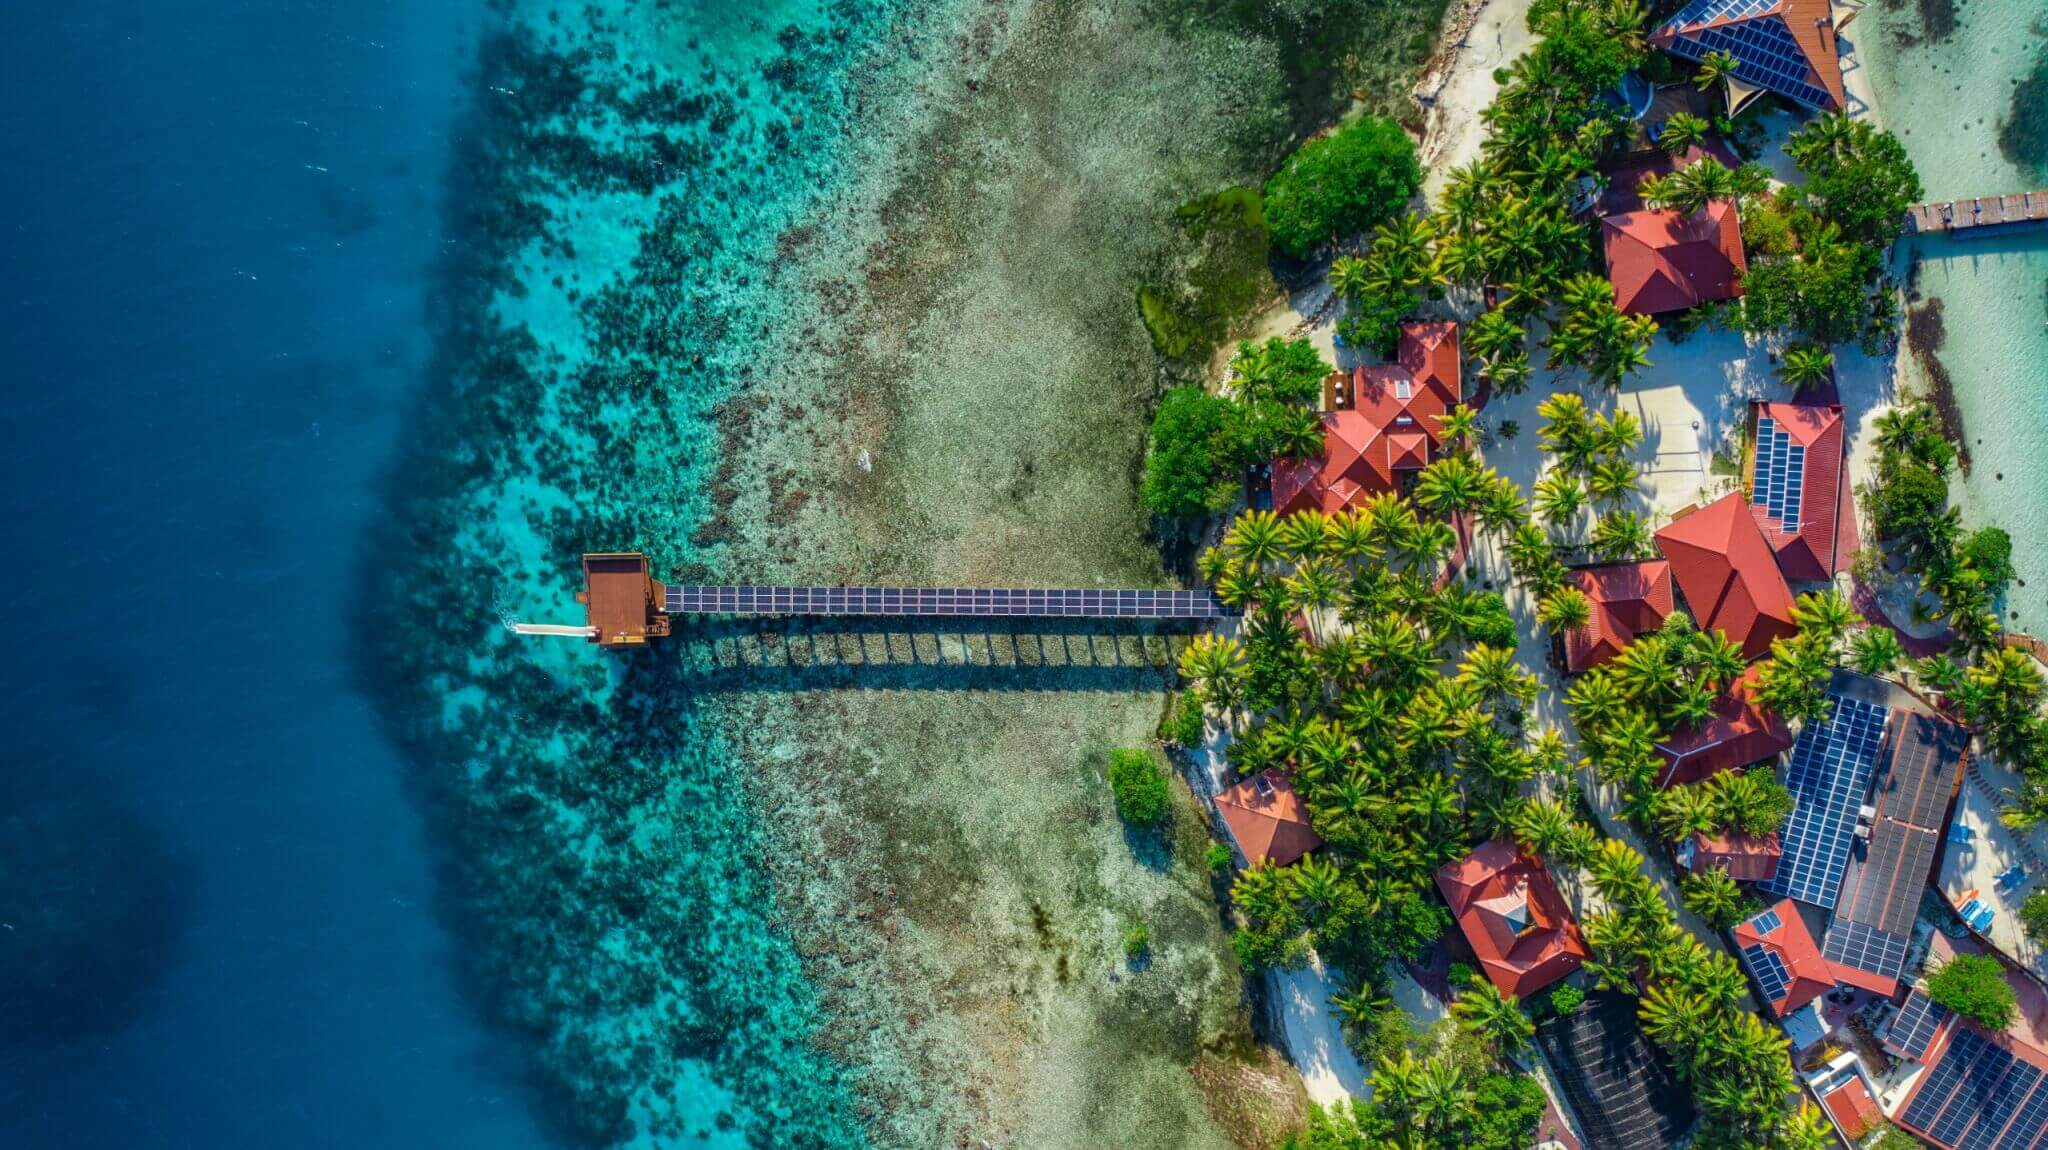 Looking For Your Next Vacation Destination? Here Is Why You Should Choose Belize